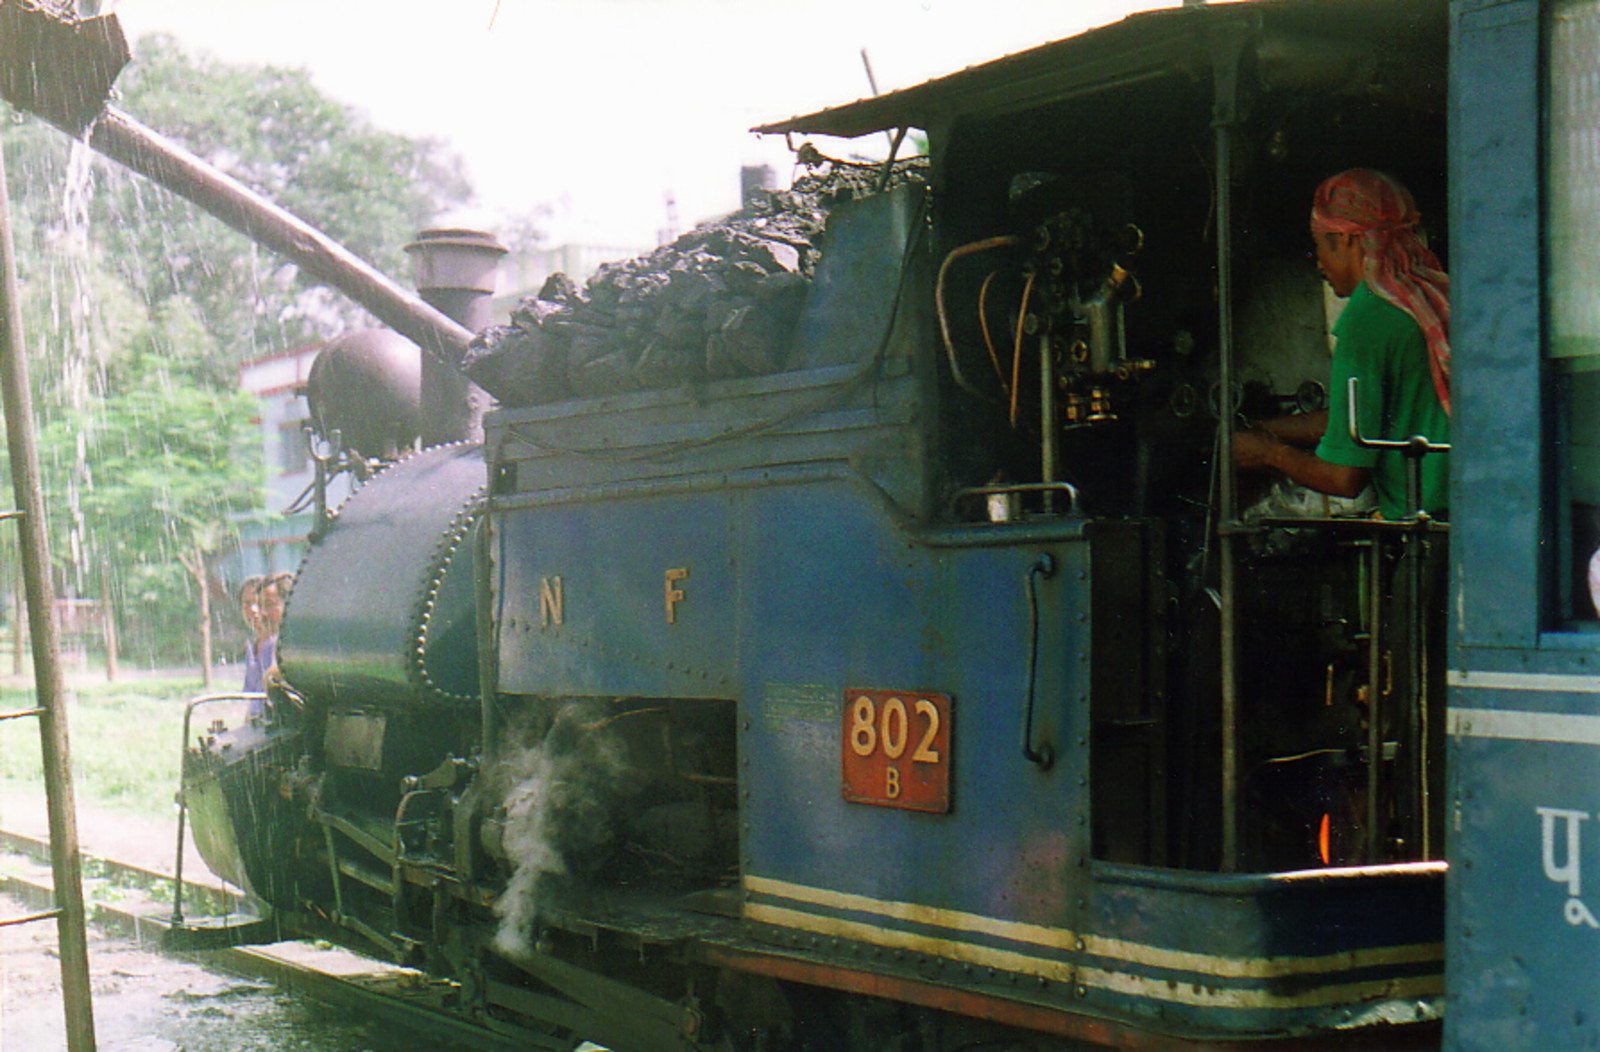 The Toy Train's engine